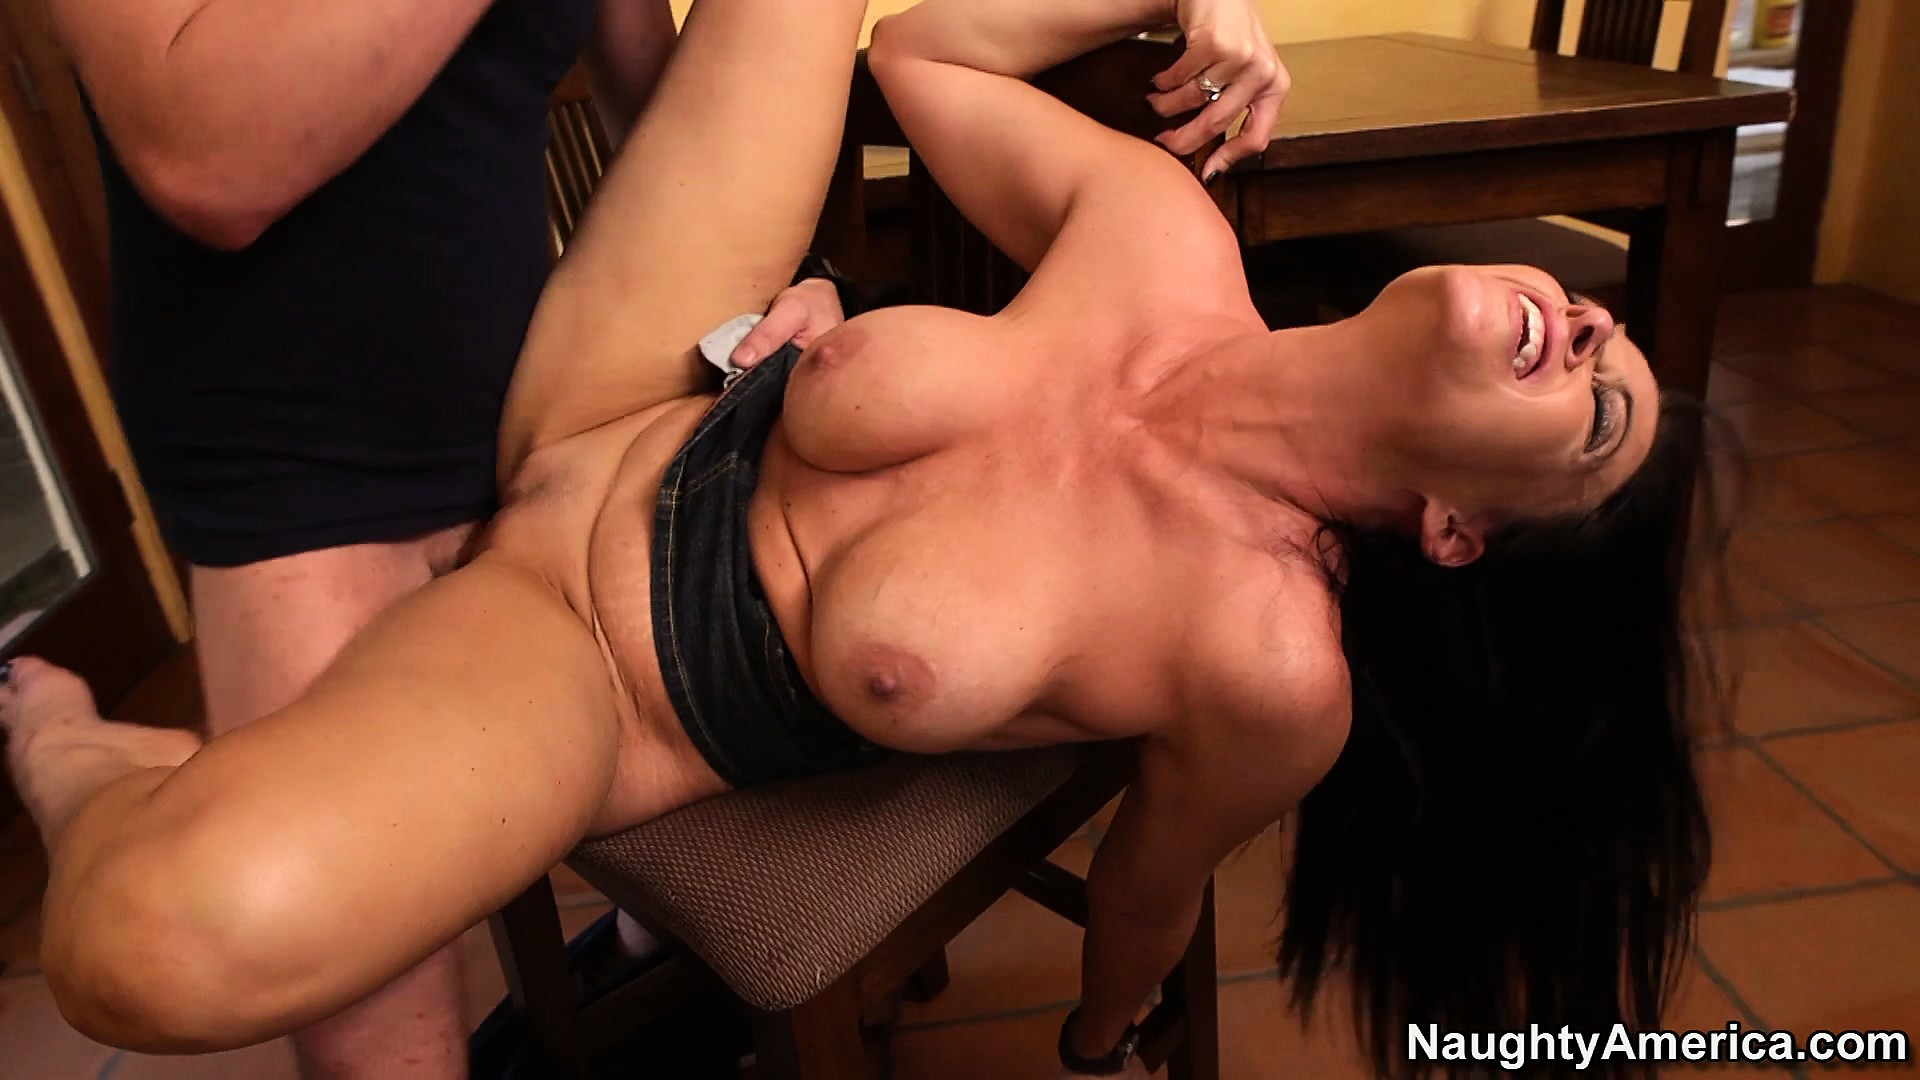 Porn Tube of Busty Brunette Mom Vanilla Deville Gets Hammered Hard On The Kitchen Table